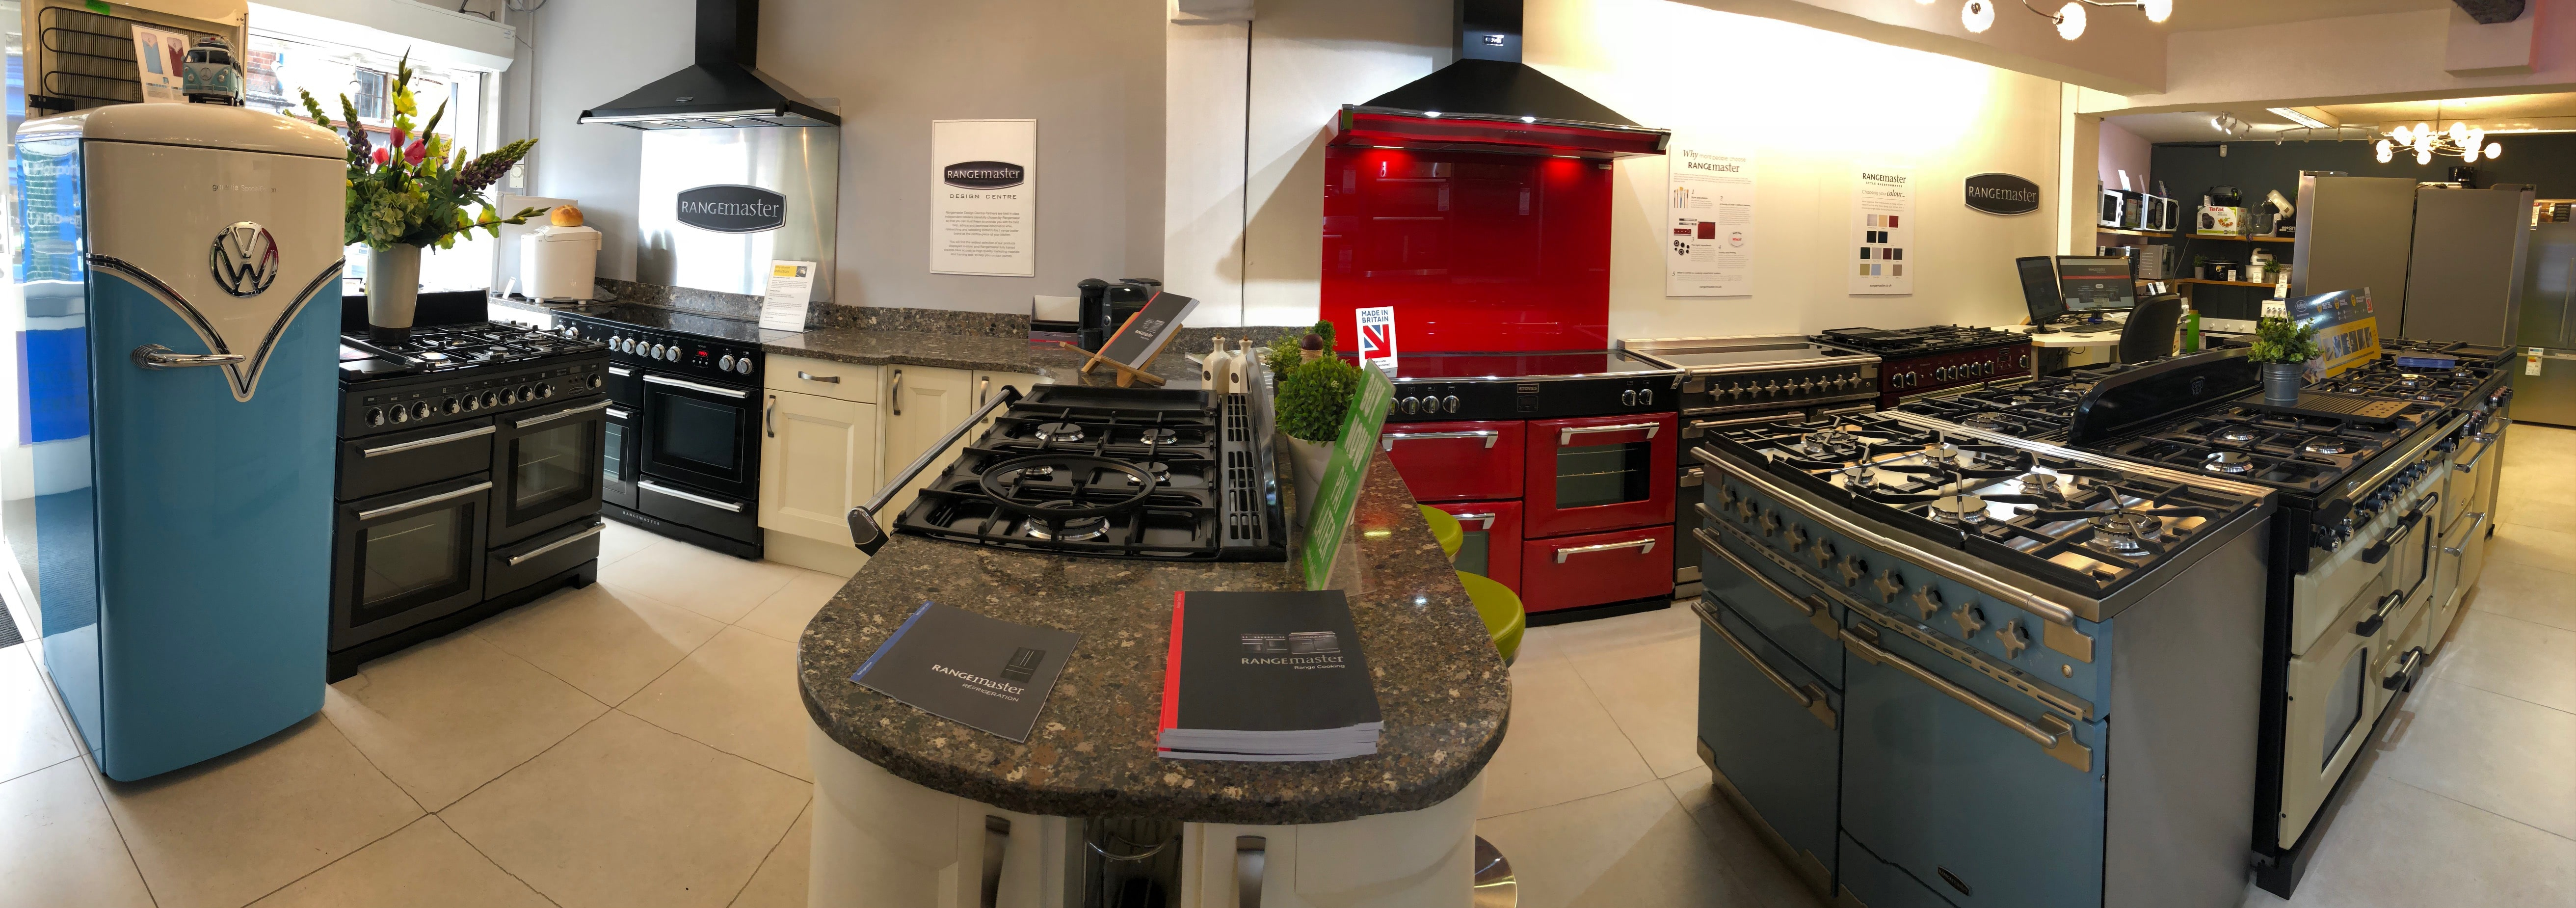 Rangemaster Premium Partner Showroom